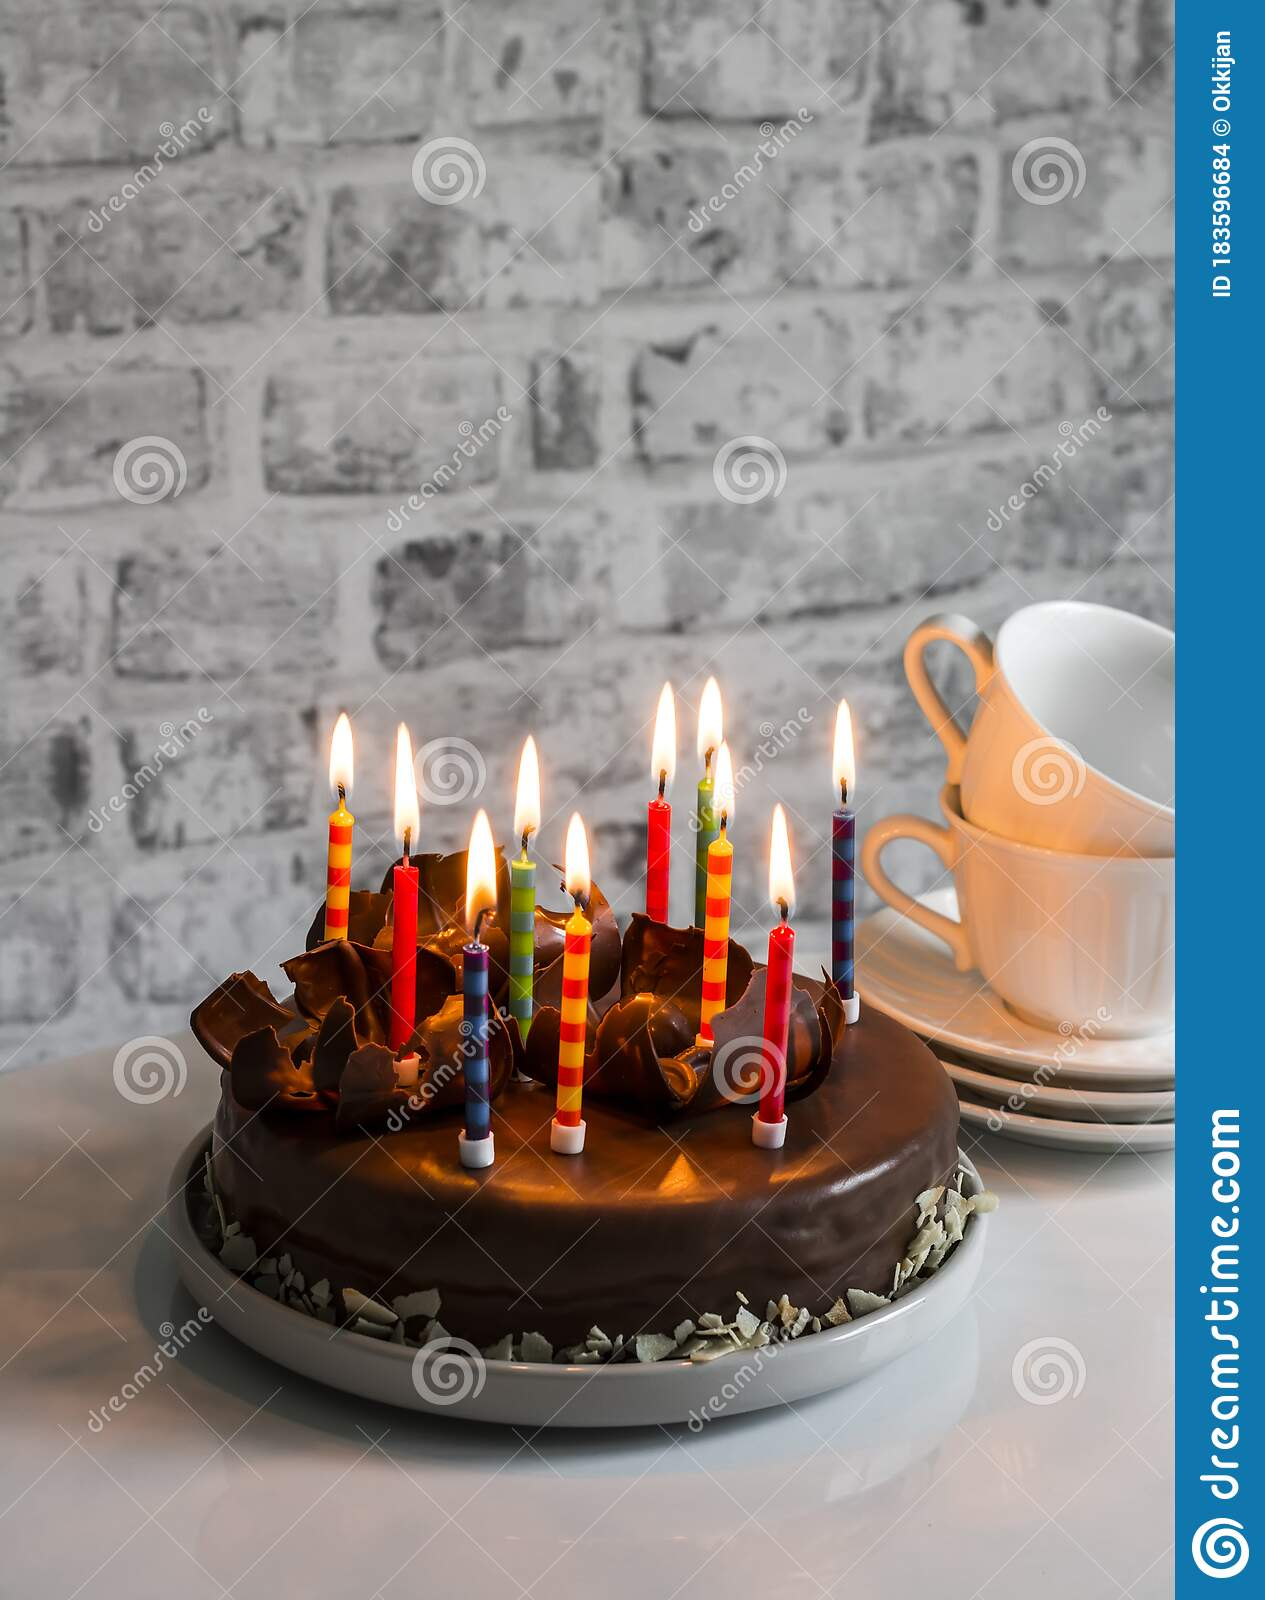 Simple Homemade Chocolate Birthday Cake With Burning Candles On The Table Holiday Concept Stock Photo Image Of Cake Holiday 183596684